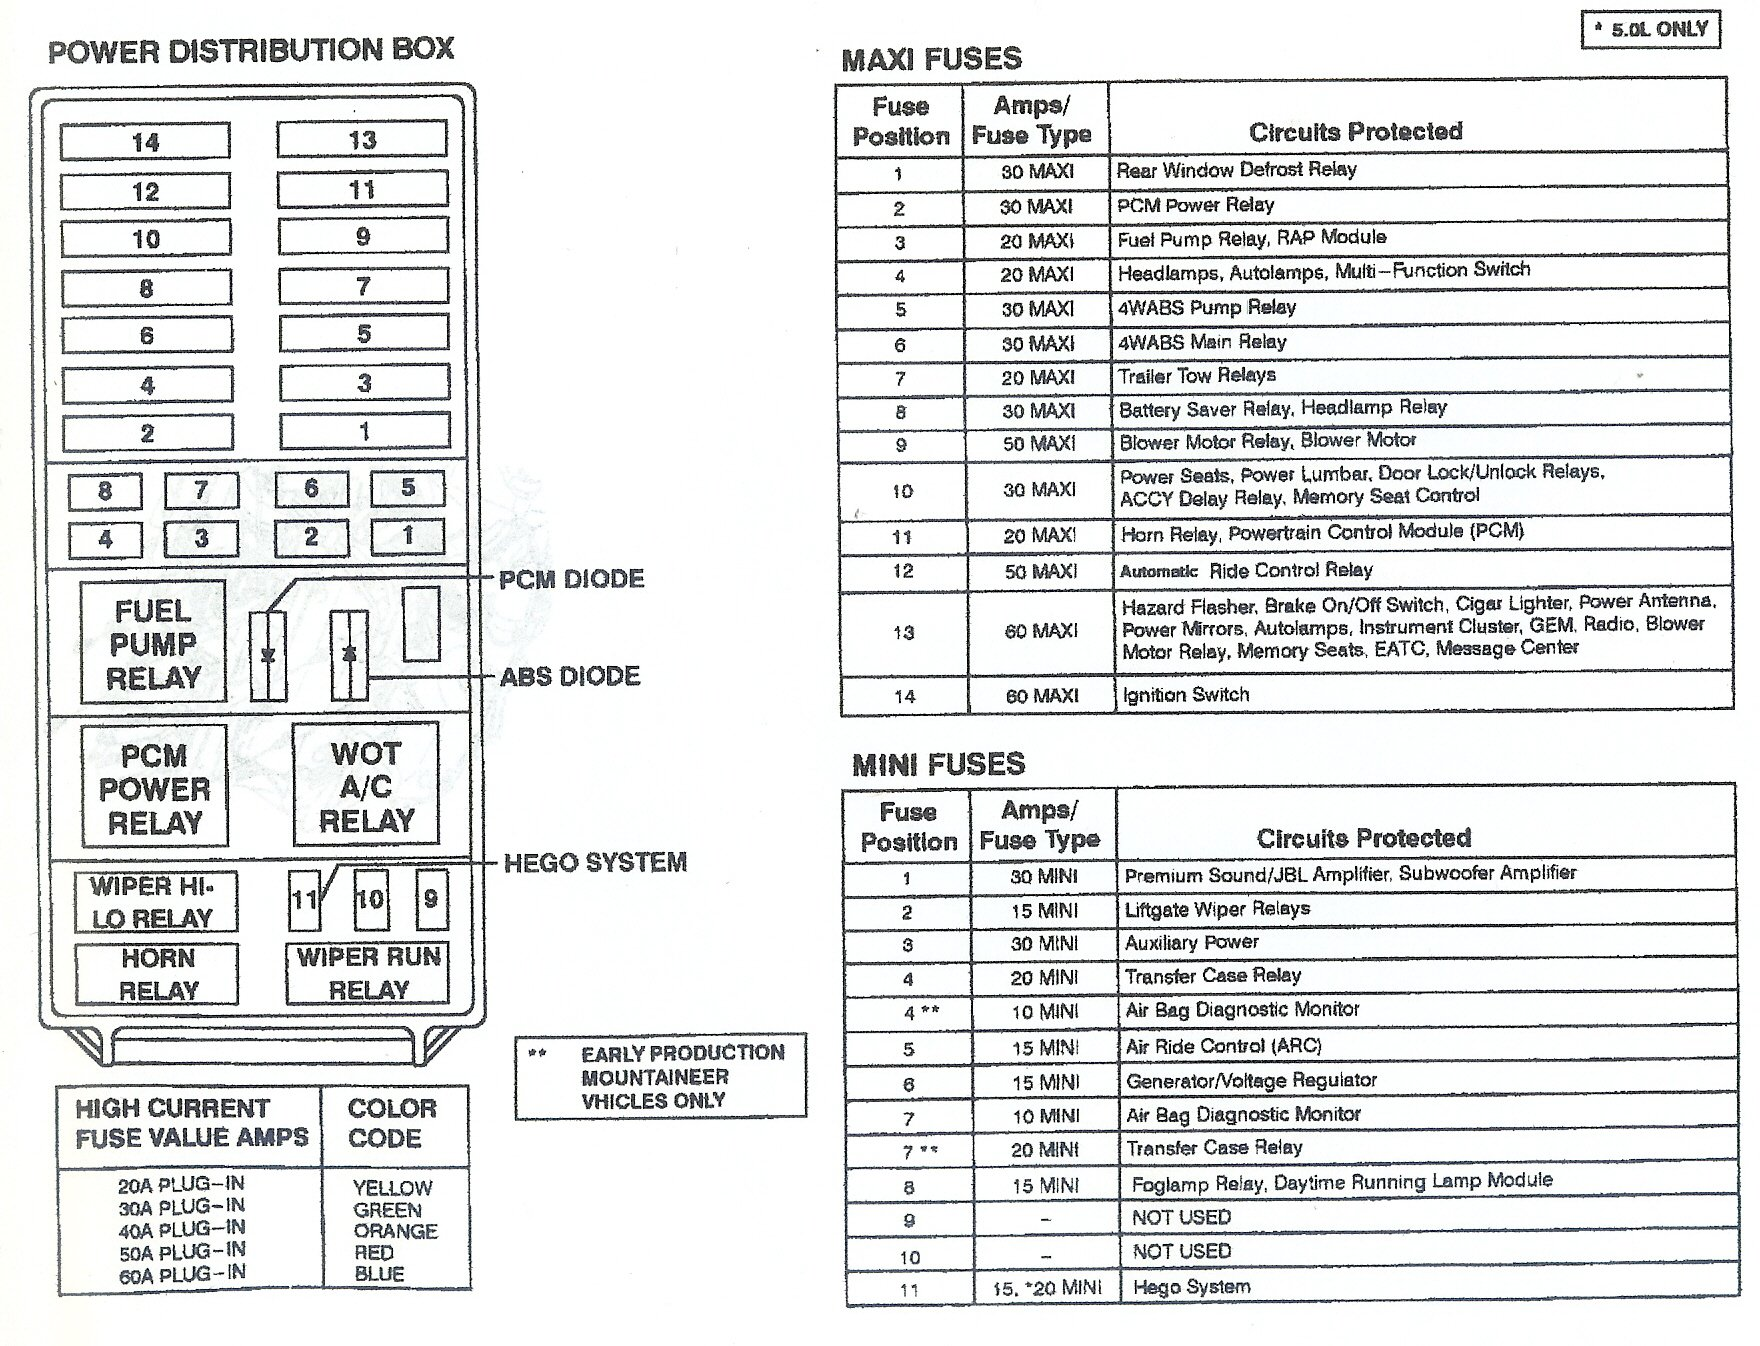 1997 ford explorer fuse diagram wiring diagram post 1998 Lincoln Mark VIII Fuse Box Diagram